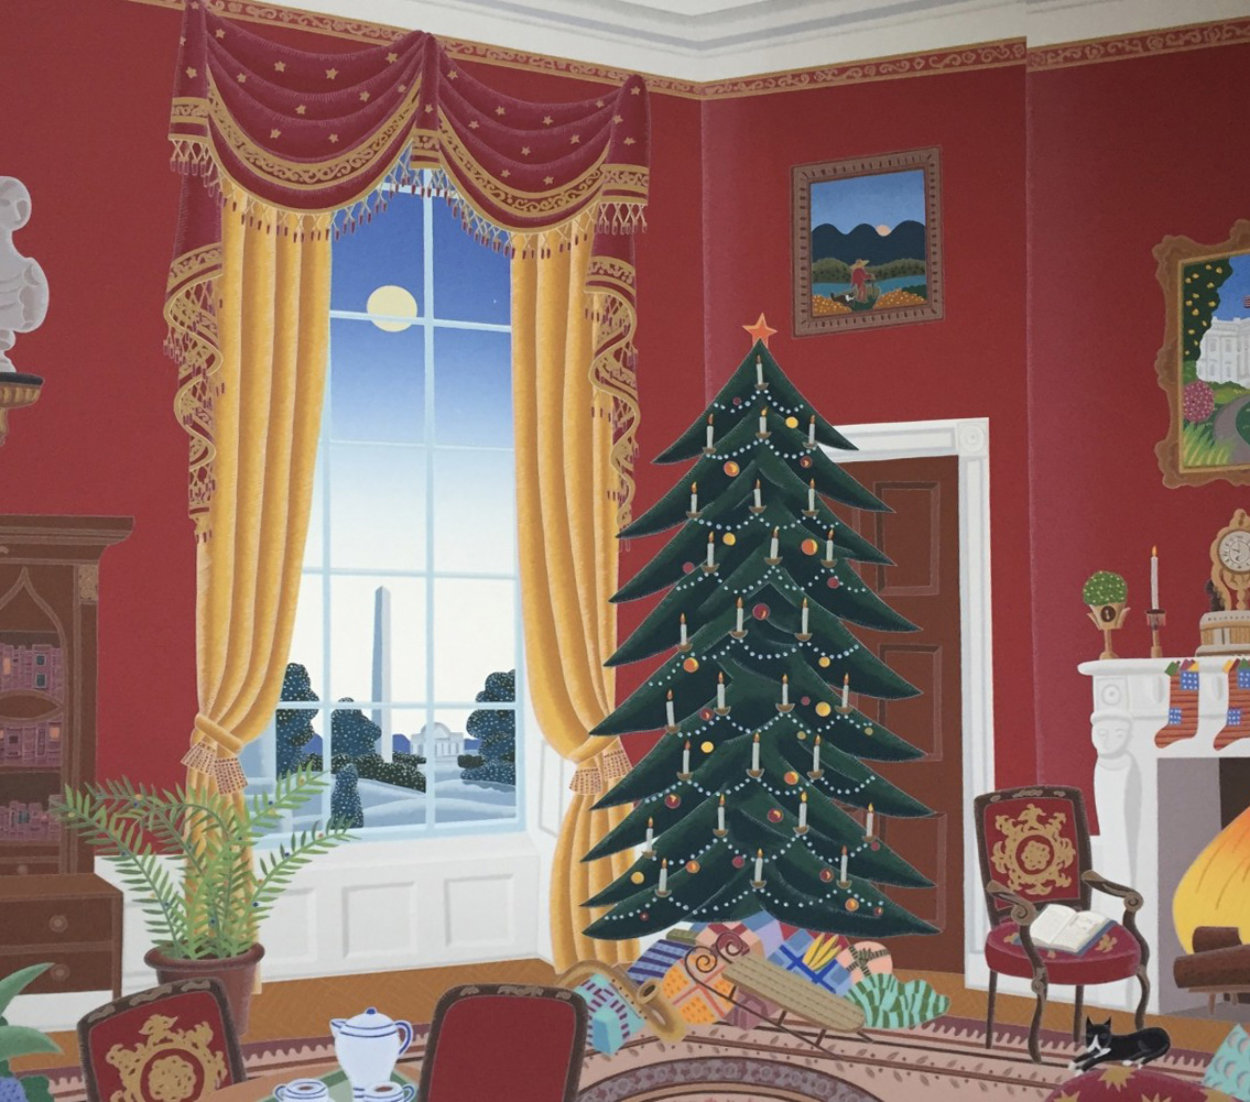 White House Red Room At Christmas 1985 Limited Edition Print by Thomas Frederick McKnight